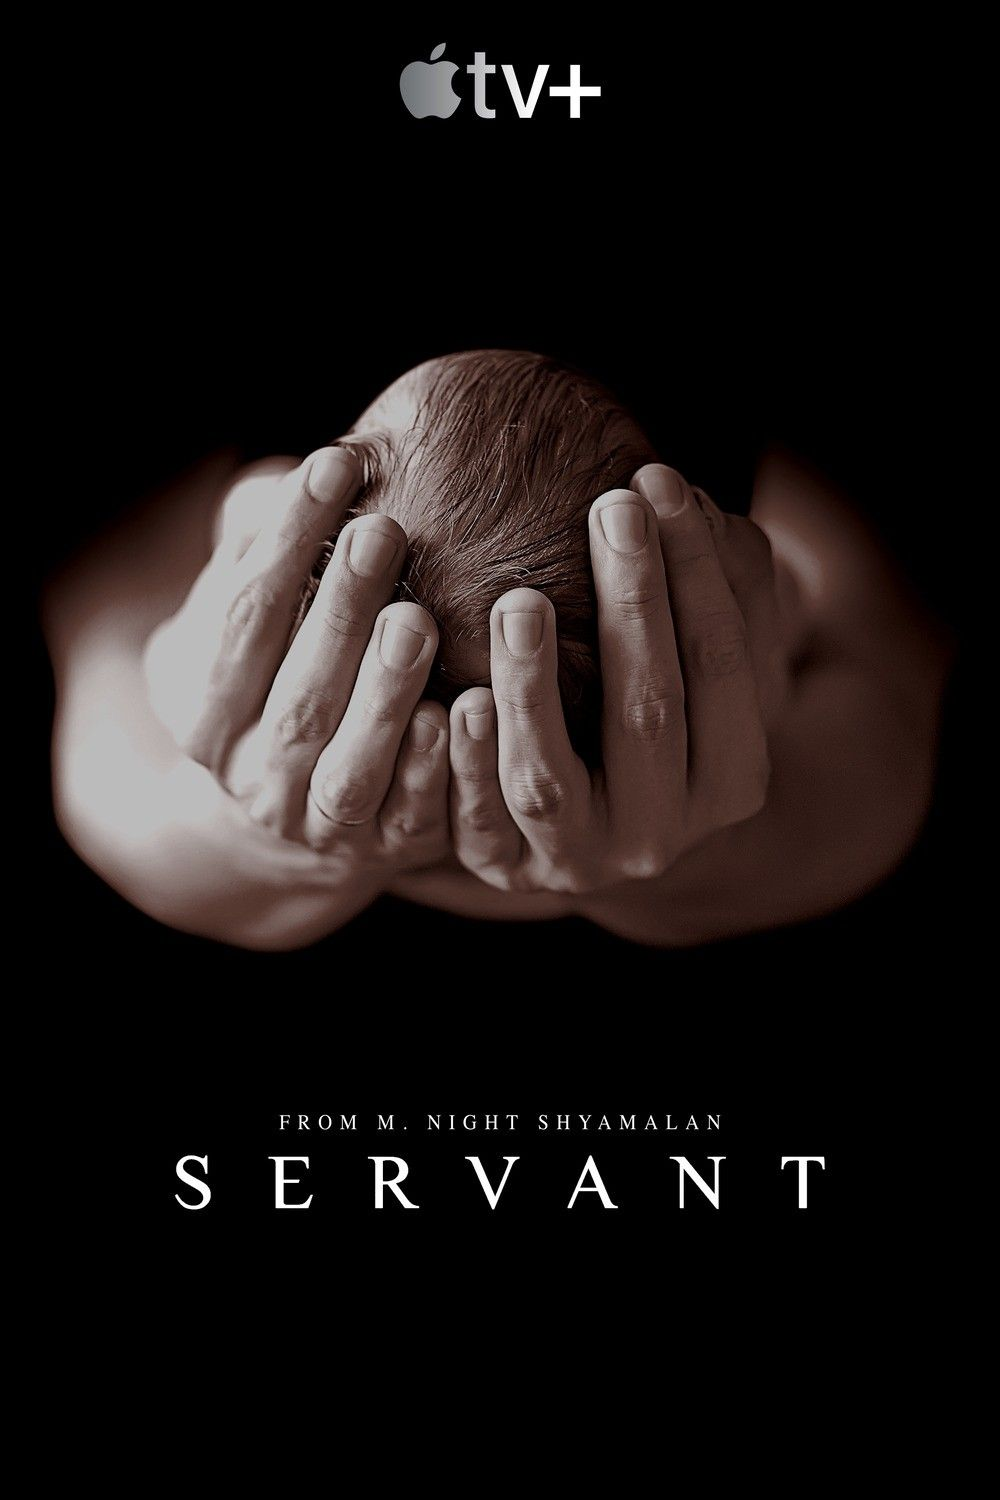 New poster for the new Apple TV and M. Night Shyamalan series SERVANT. |  Servant, Tv, New poster